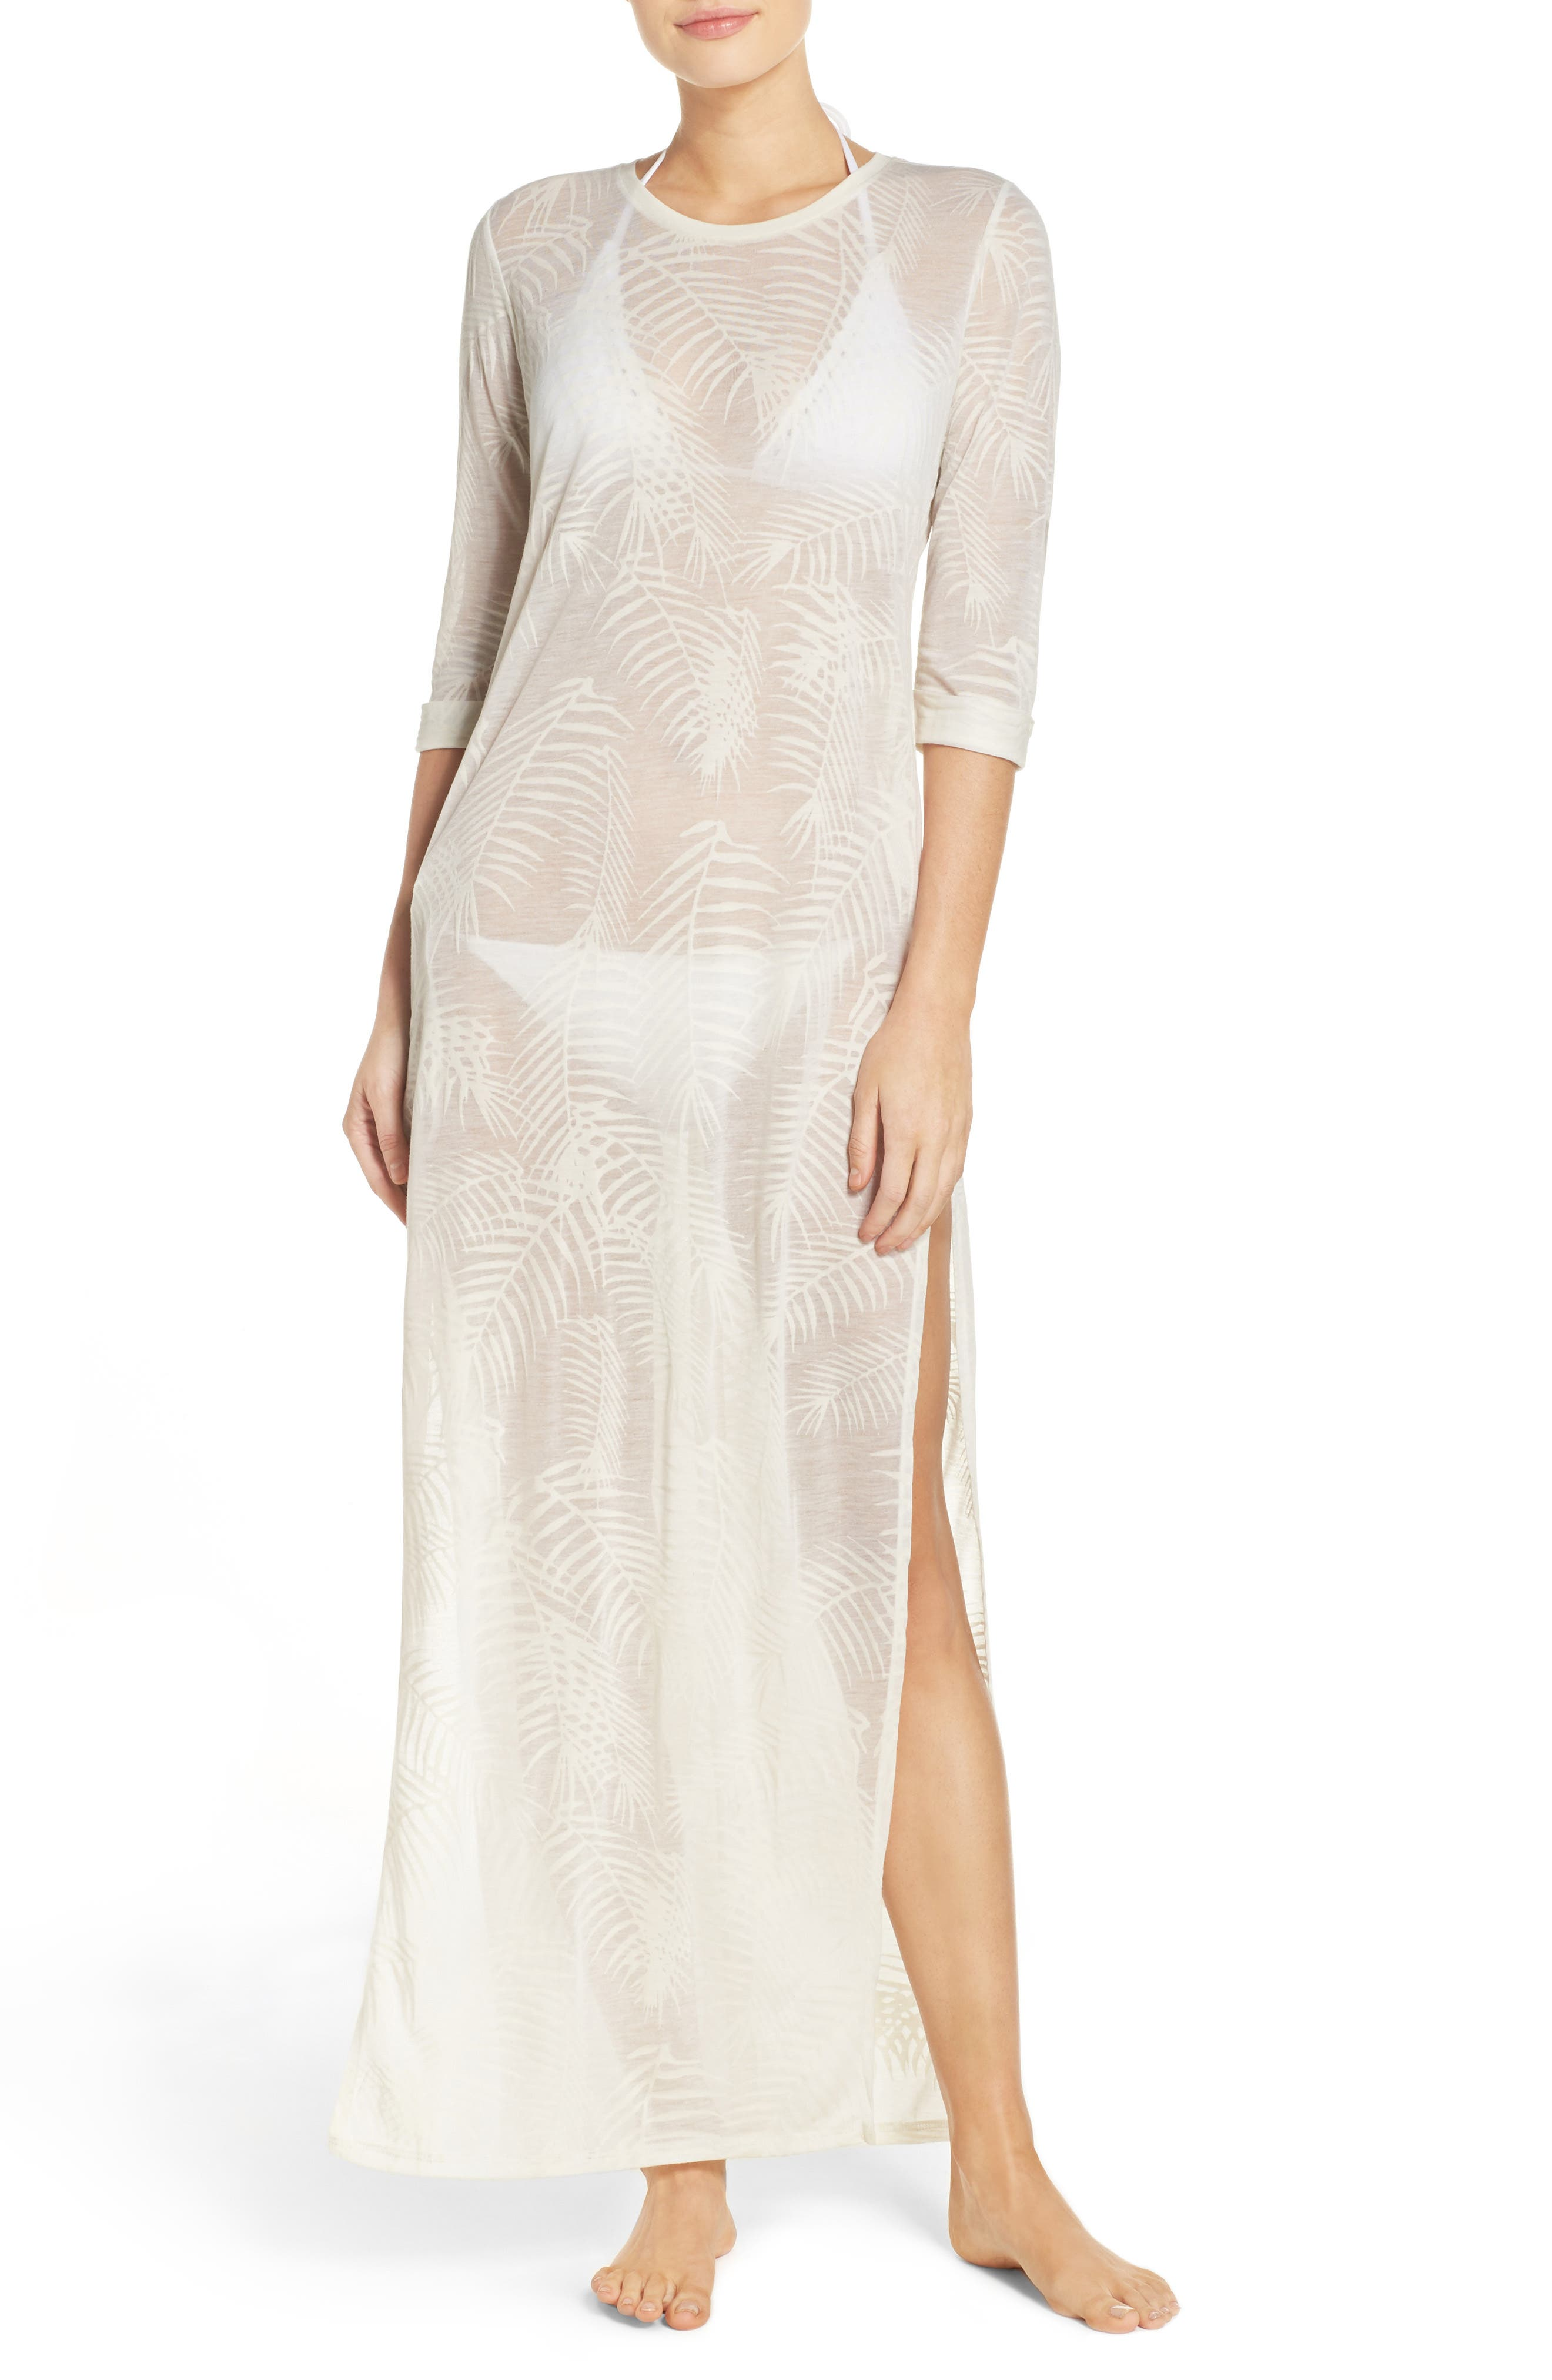 Finley Cover-Up Maxi Dress,                         Main,                         color, 100